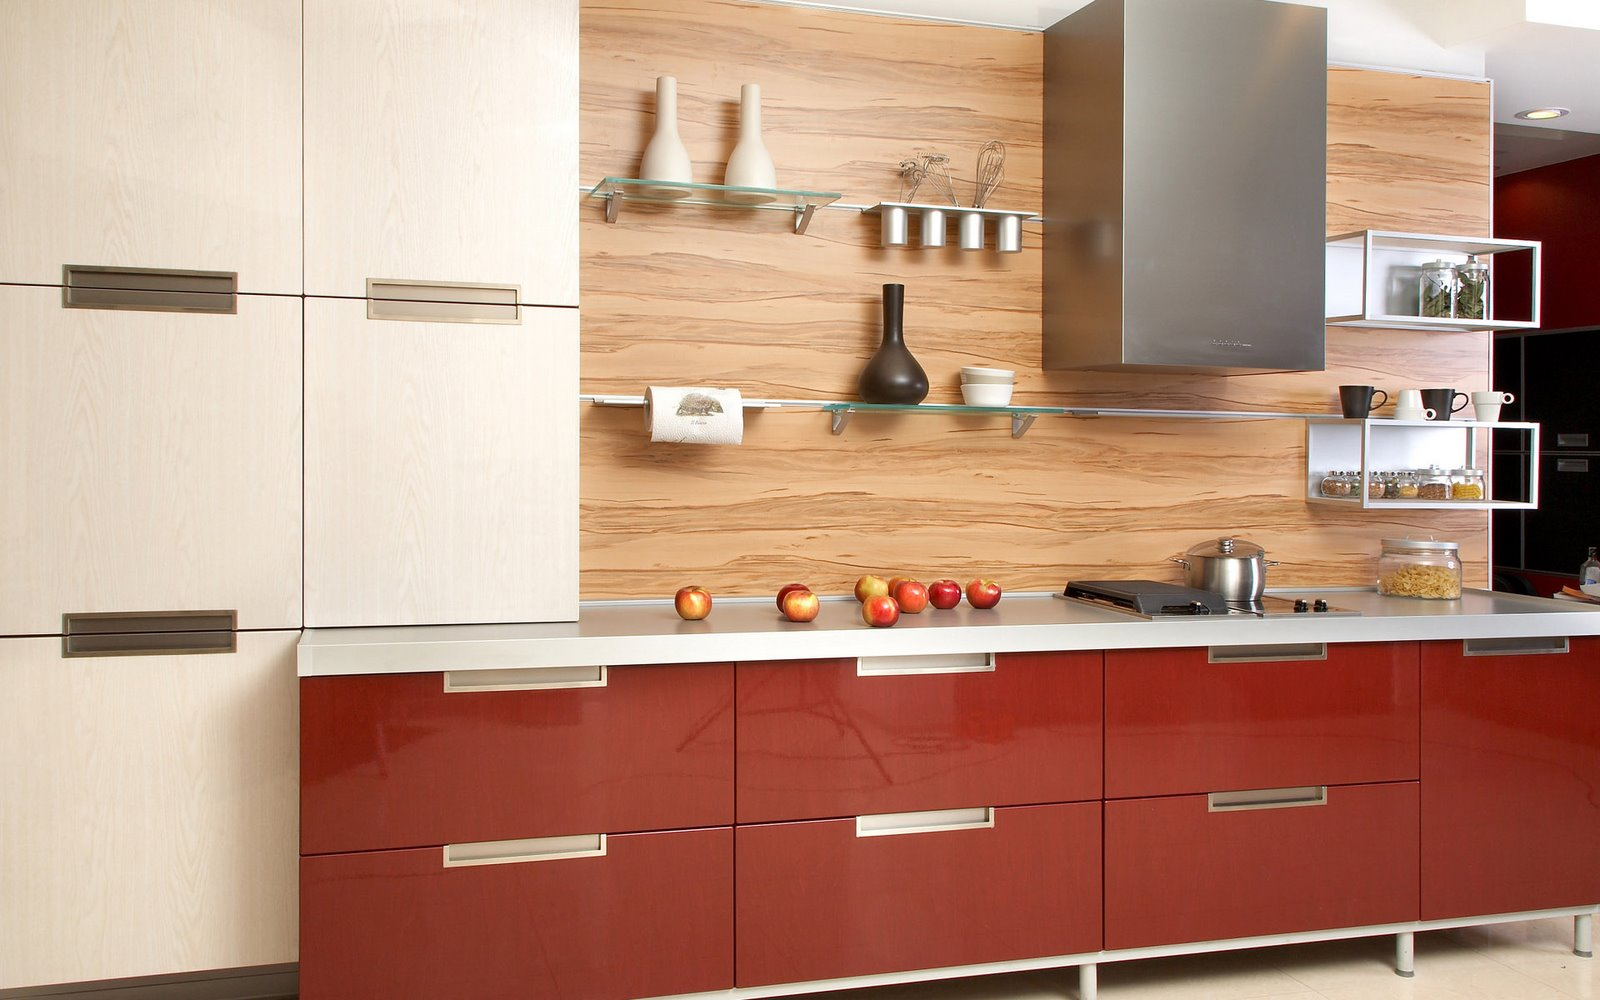 Modern wood kitchen design dream kitchens pinterest kitchen designs kitchens and open Kitchen design pictures modern